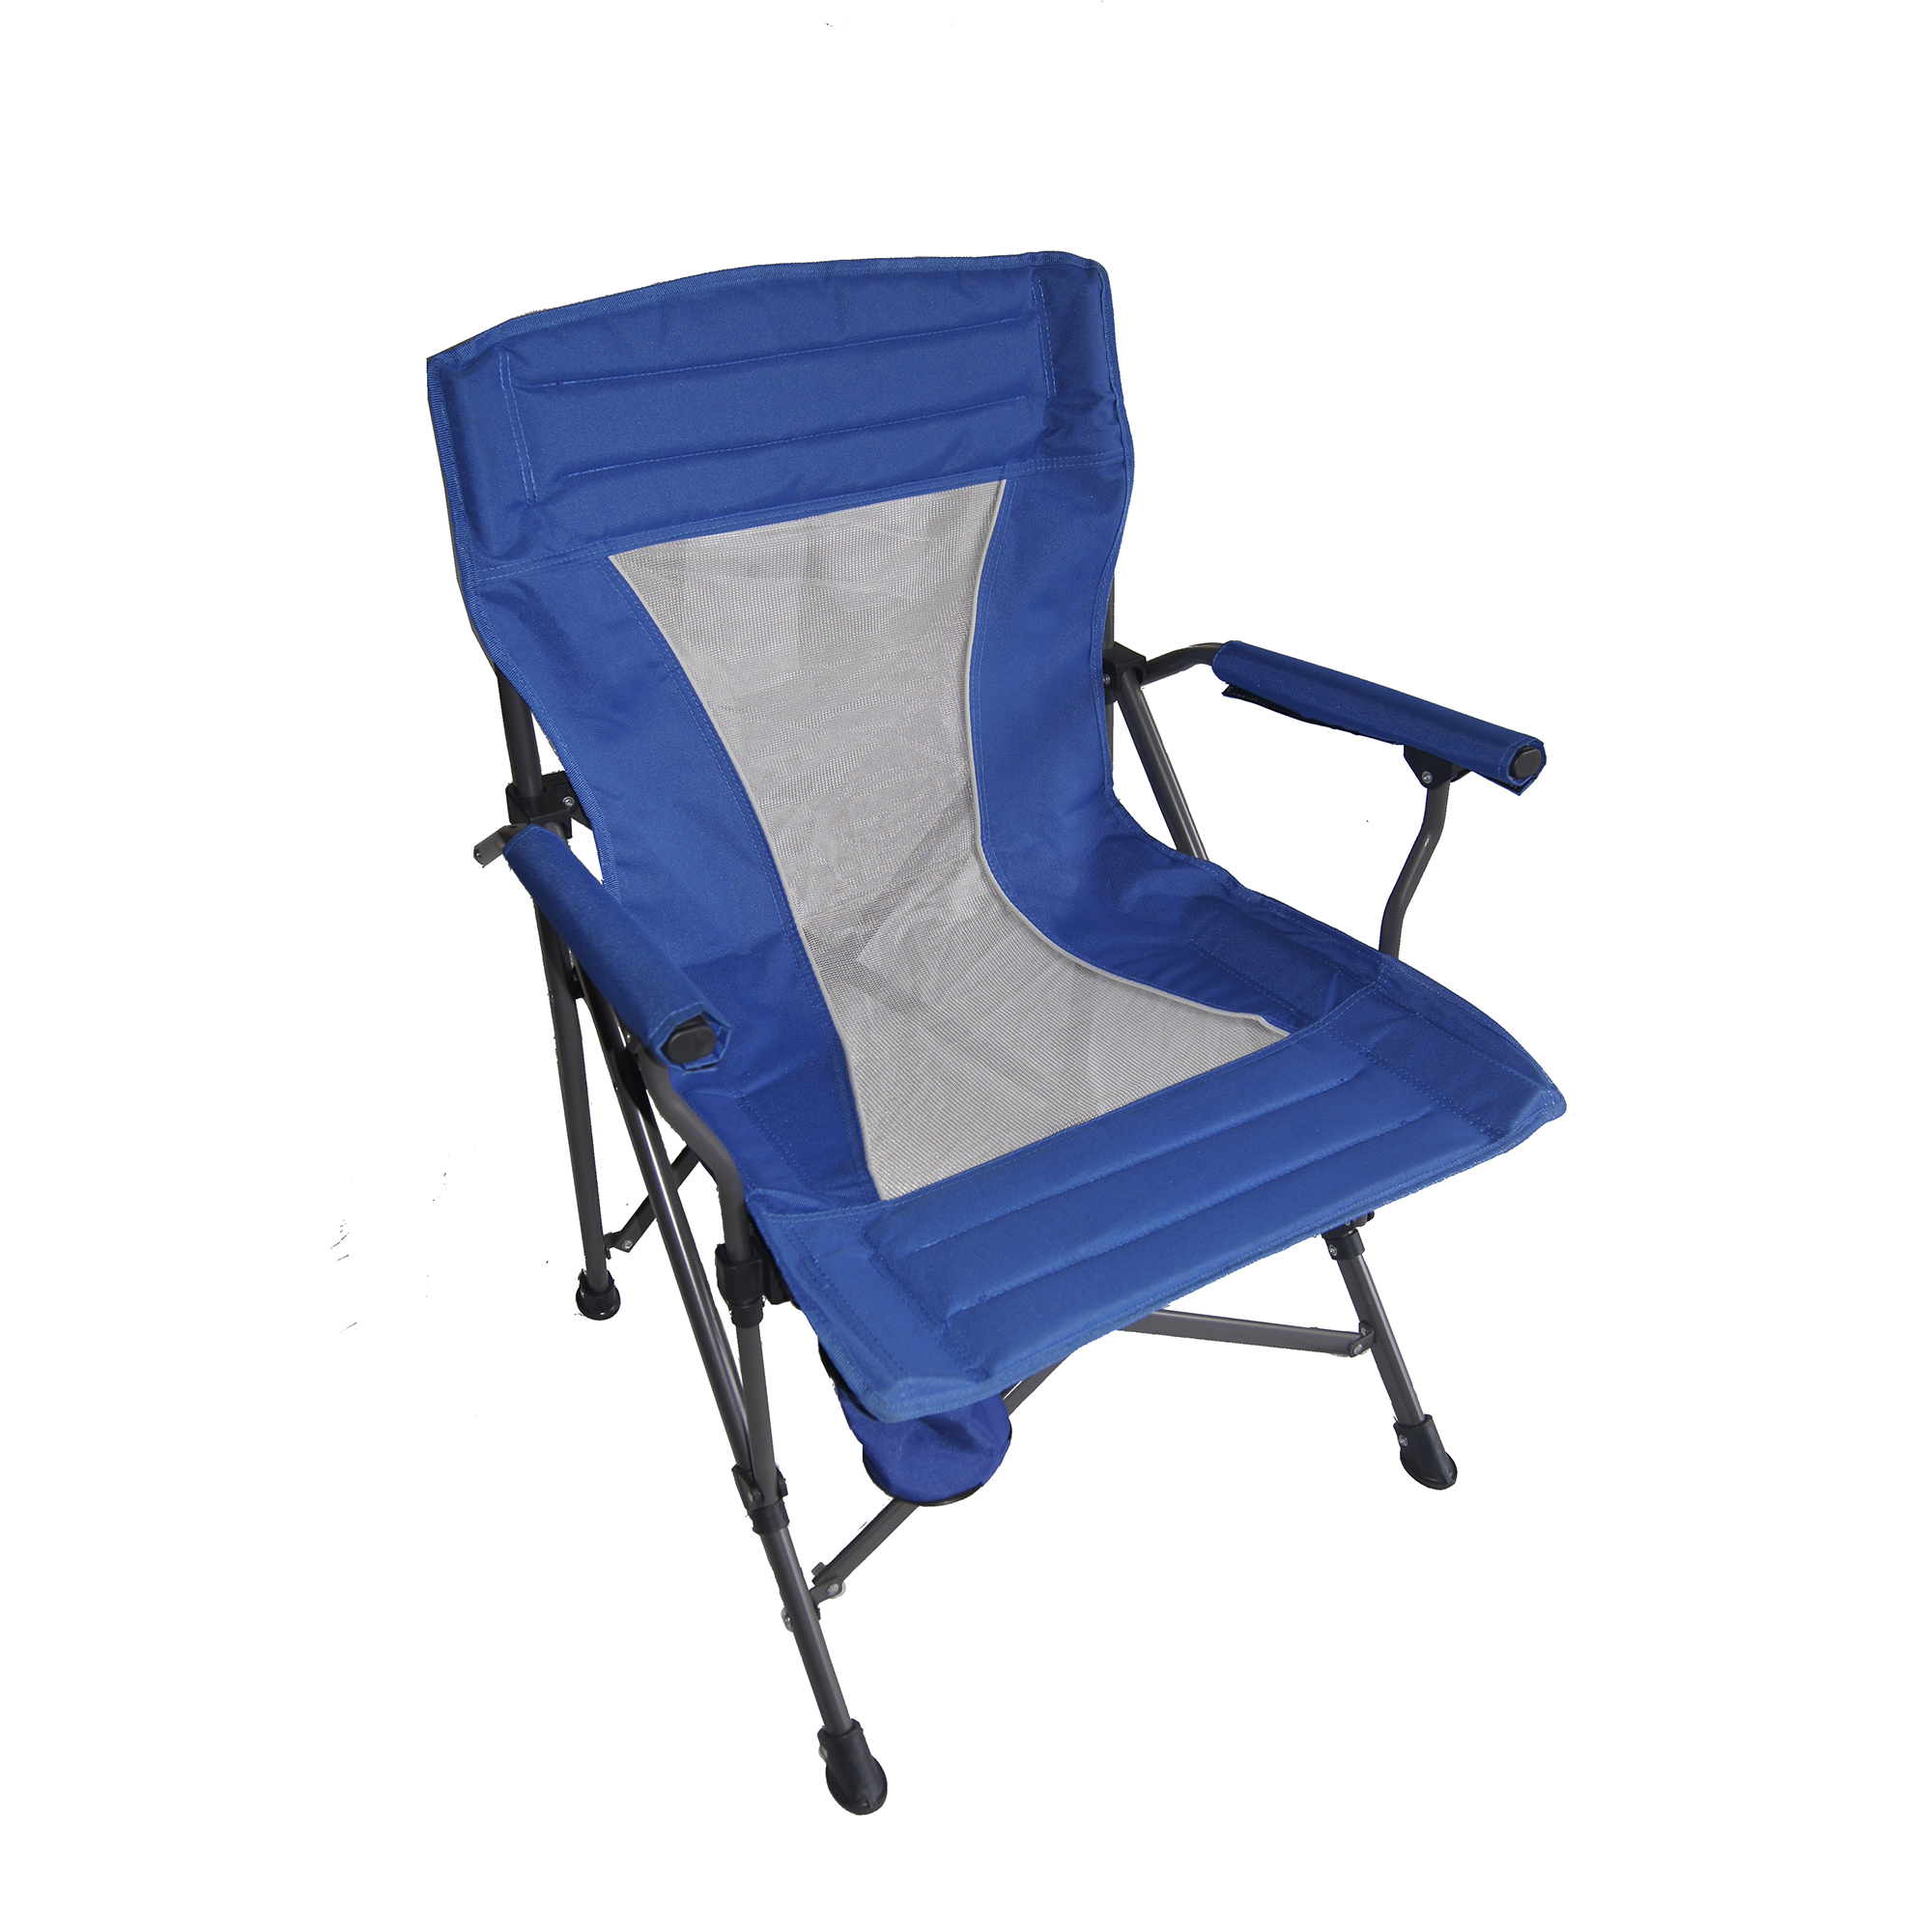 Ore International 36 Inch Portable Folding Blue Chair